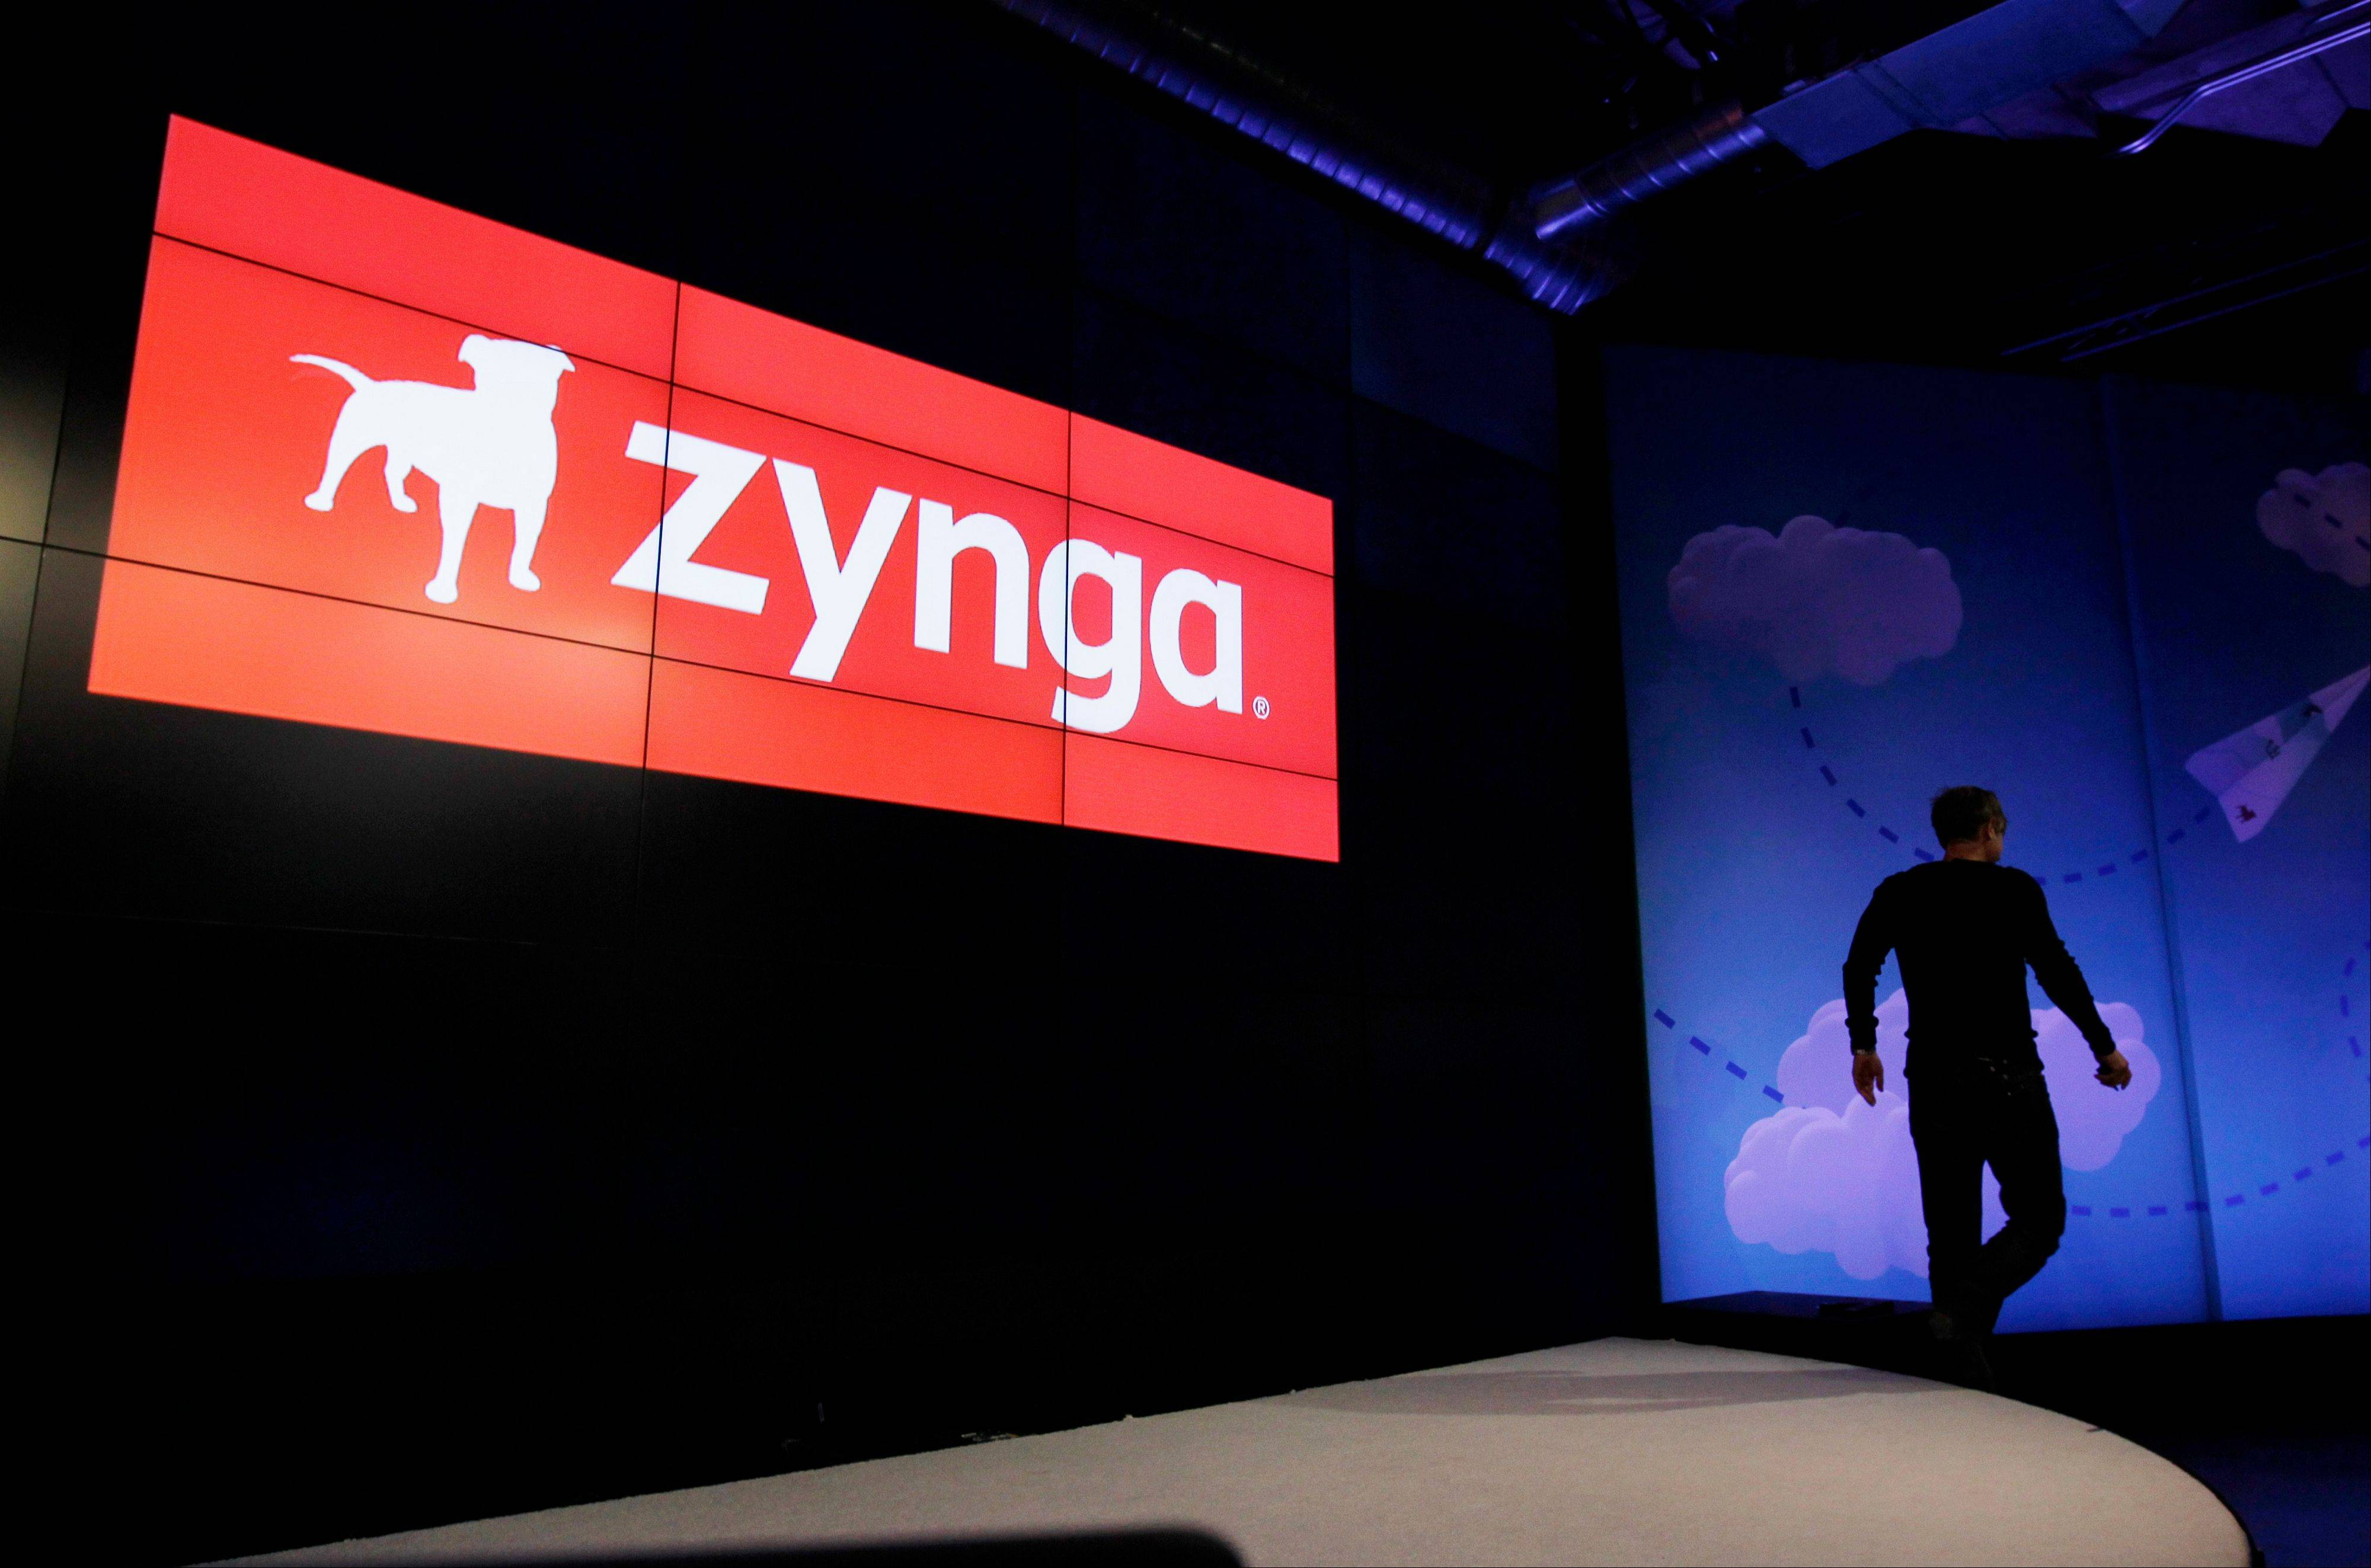 Associated Press Zynga�s stock is tanking after the online game maker reported a loss in the second quarter, with adjusted earnings and revenue below Wall Street�s already-low expectations.